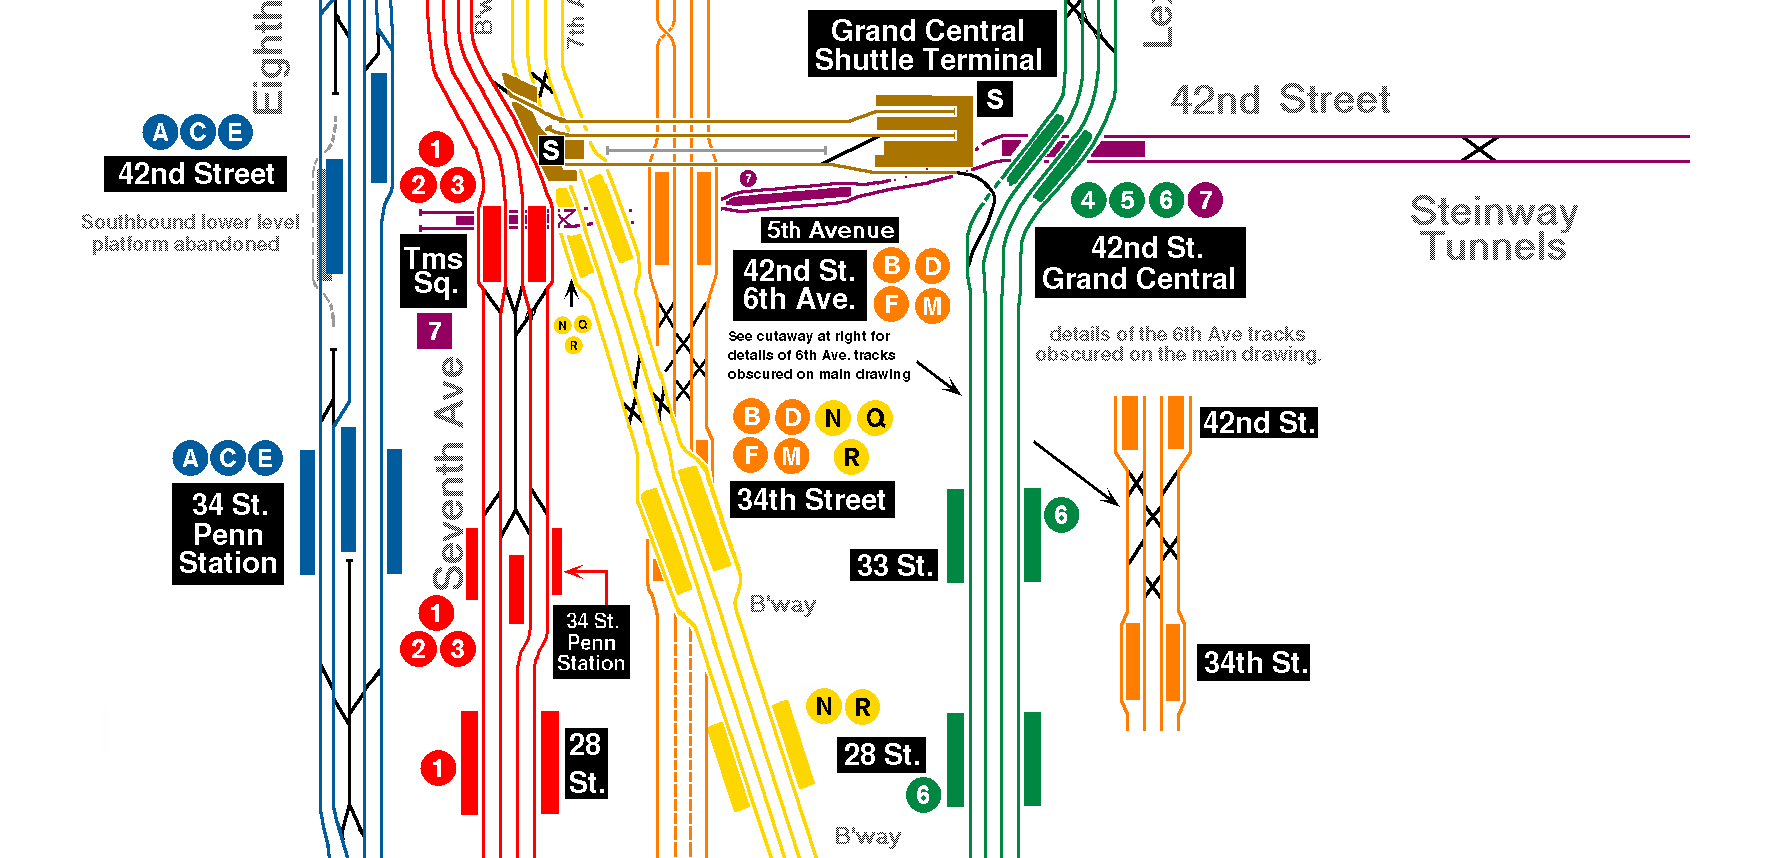 Nyc Subway Station Diagrams Trusted Wiring Diagram Schematic Entrances Carto Information Visualization 1 Line T Shirt